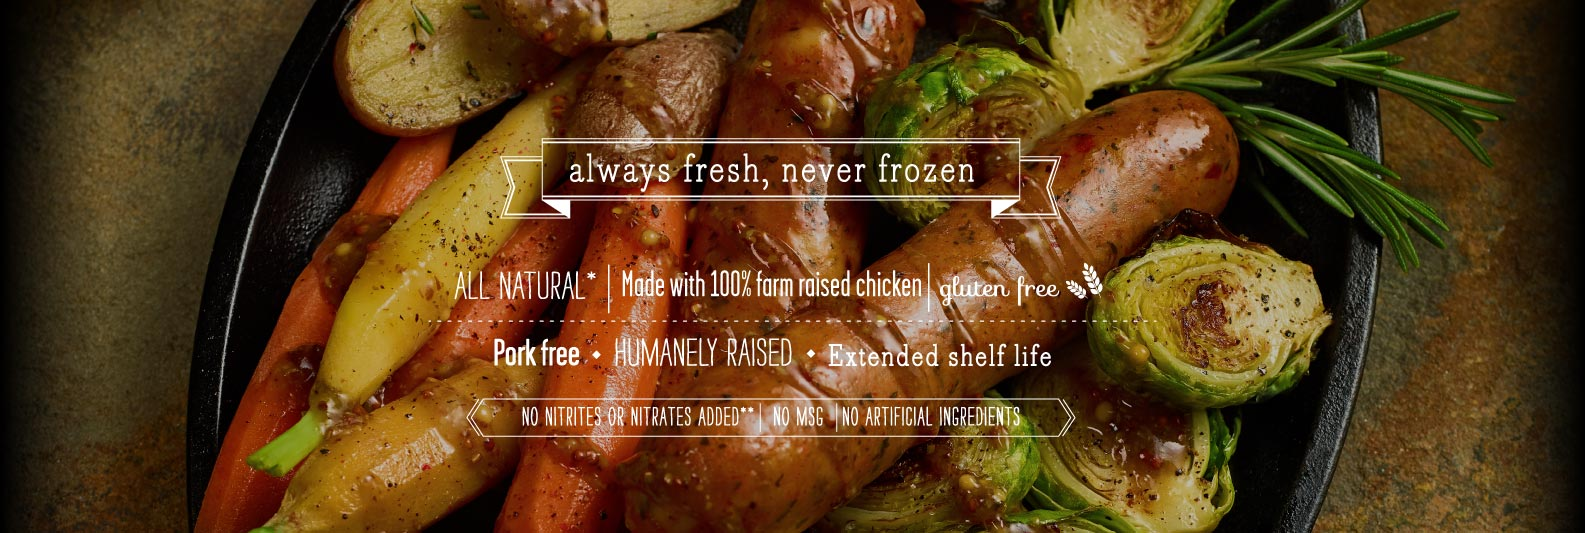 Always Fresh, Never Frozen - Chef's Craft Flavored Chicken Sausage from Wayne Farms